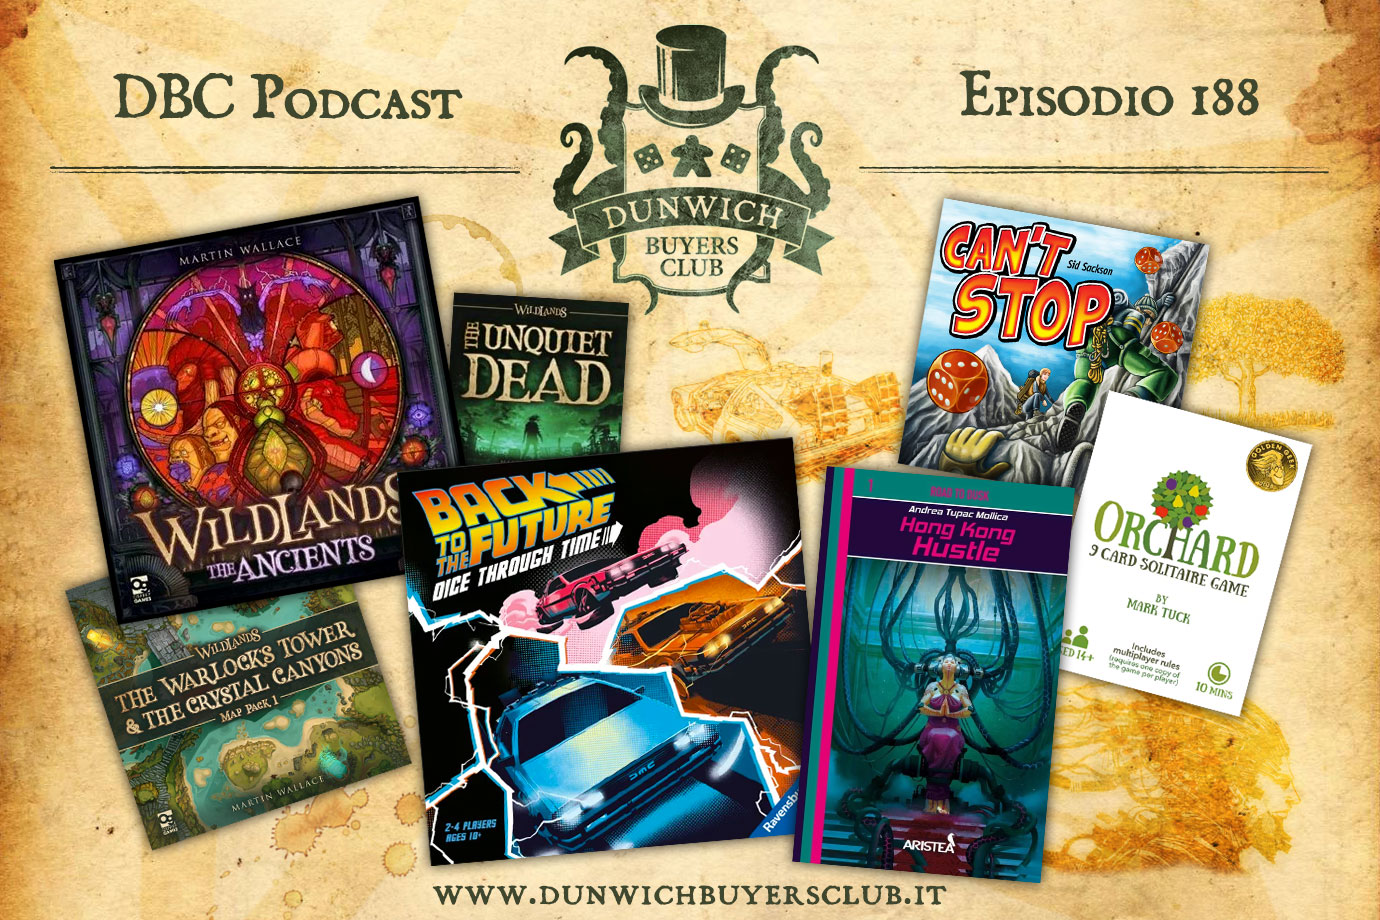 Dunwich Buyers Club - Episodio 188 - Wildlands round-up, Back to the Future: Dice through Time, Hong Kong Hustle, Orchard & Can't Stop